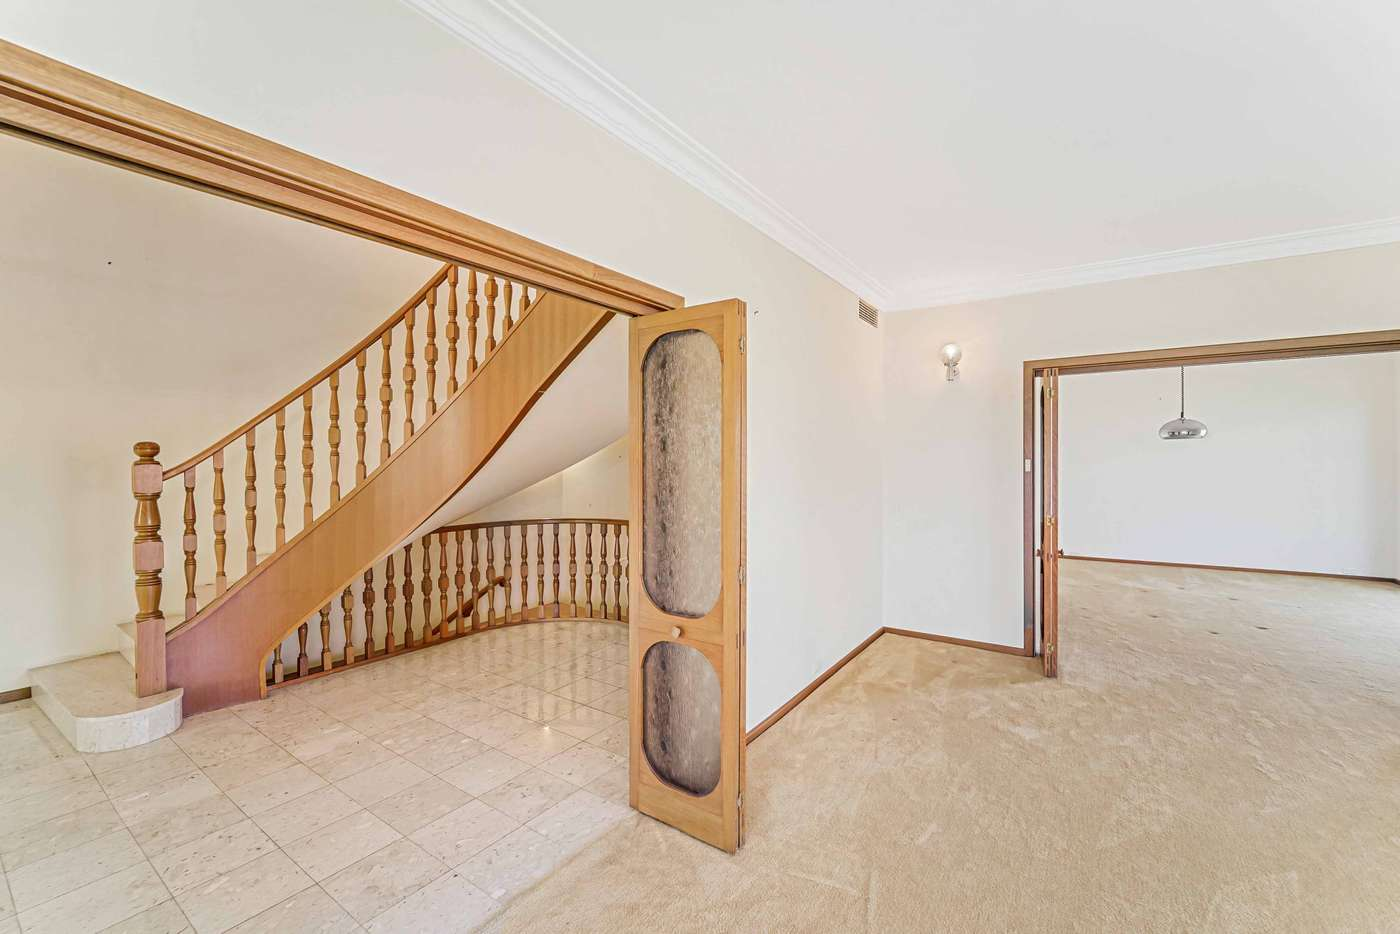 Seventh view of Homely house listing, 2 Charsley Crescent, Marmion WA 6020